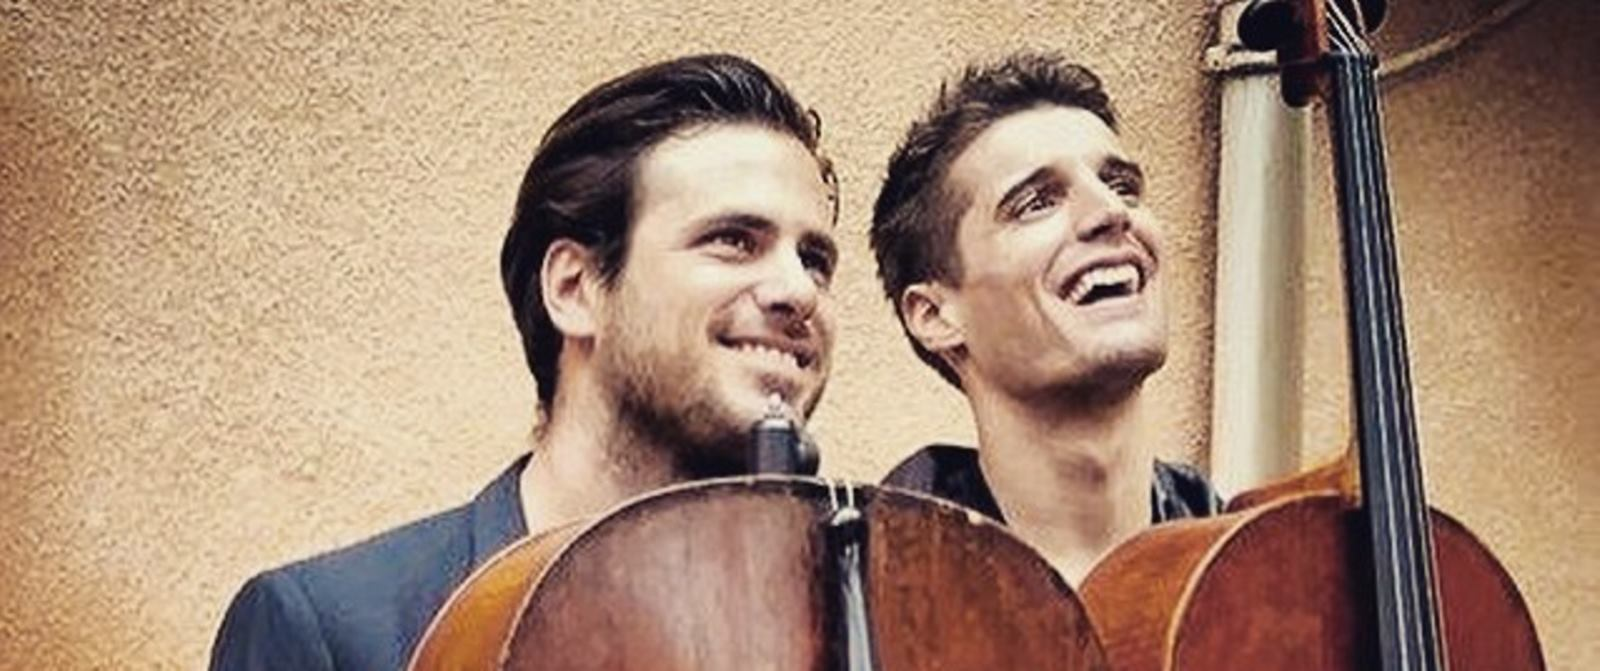 VIDEO: Duet 2CELLOS započeli turneju po Južnoj Americi